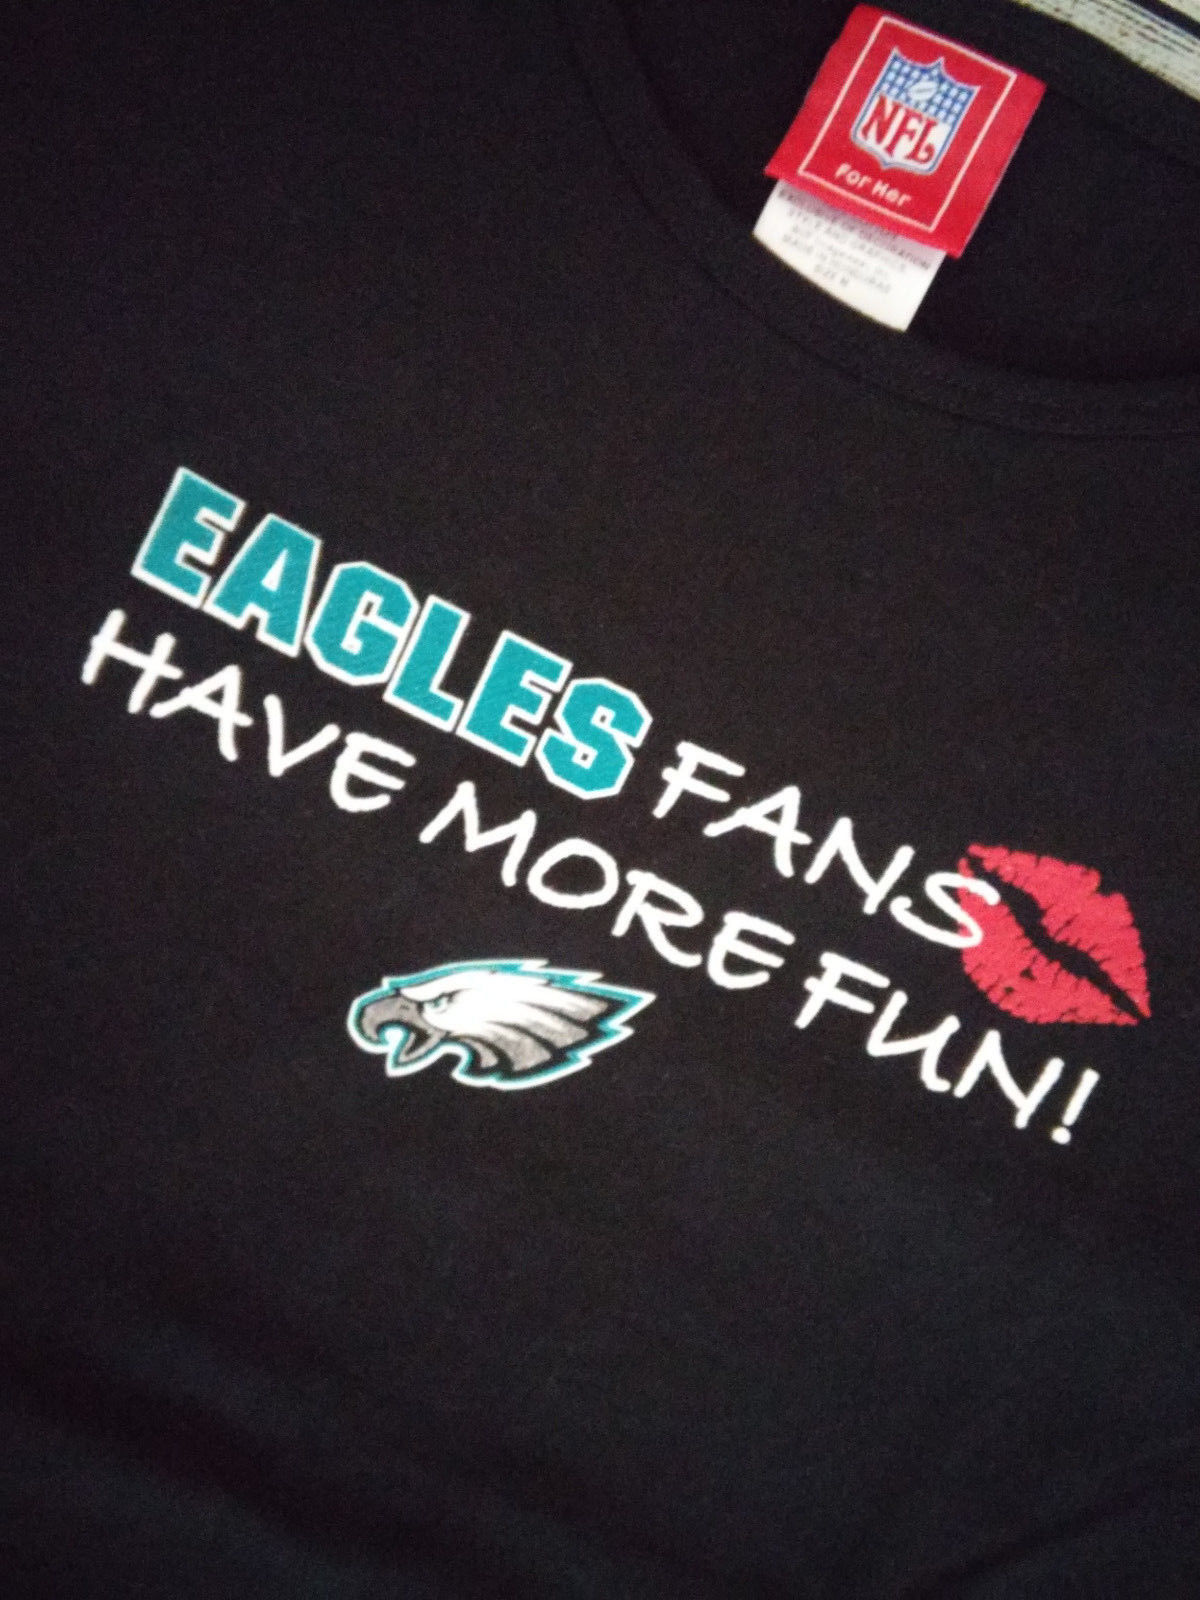 detailed look 89520 b7ec9 Philadelphia Eagles T Shirts Amazon – EDGE Engineering and ...